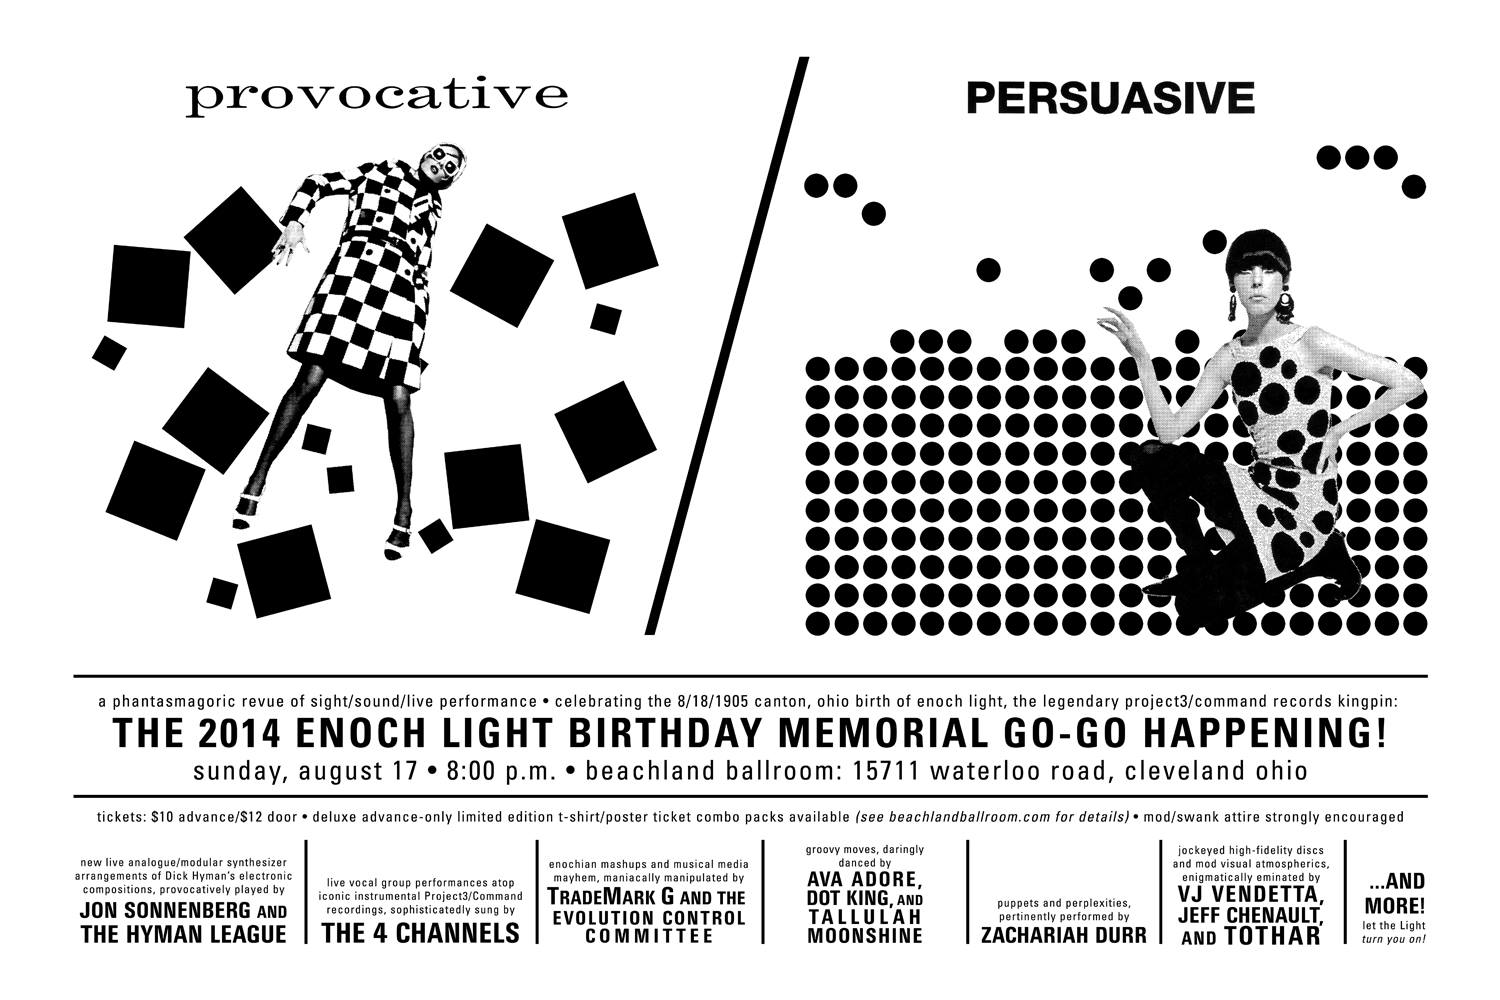 Enoch Light Birthday Memorial Go-Go Happening show poster